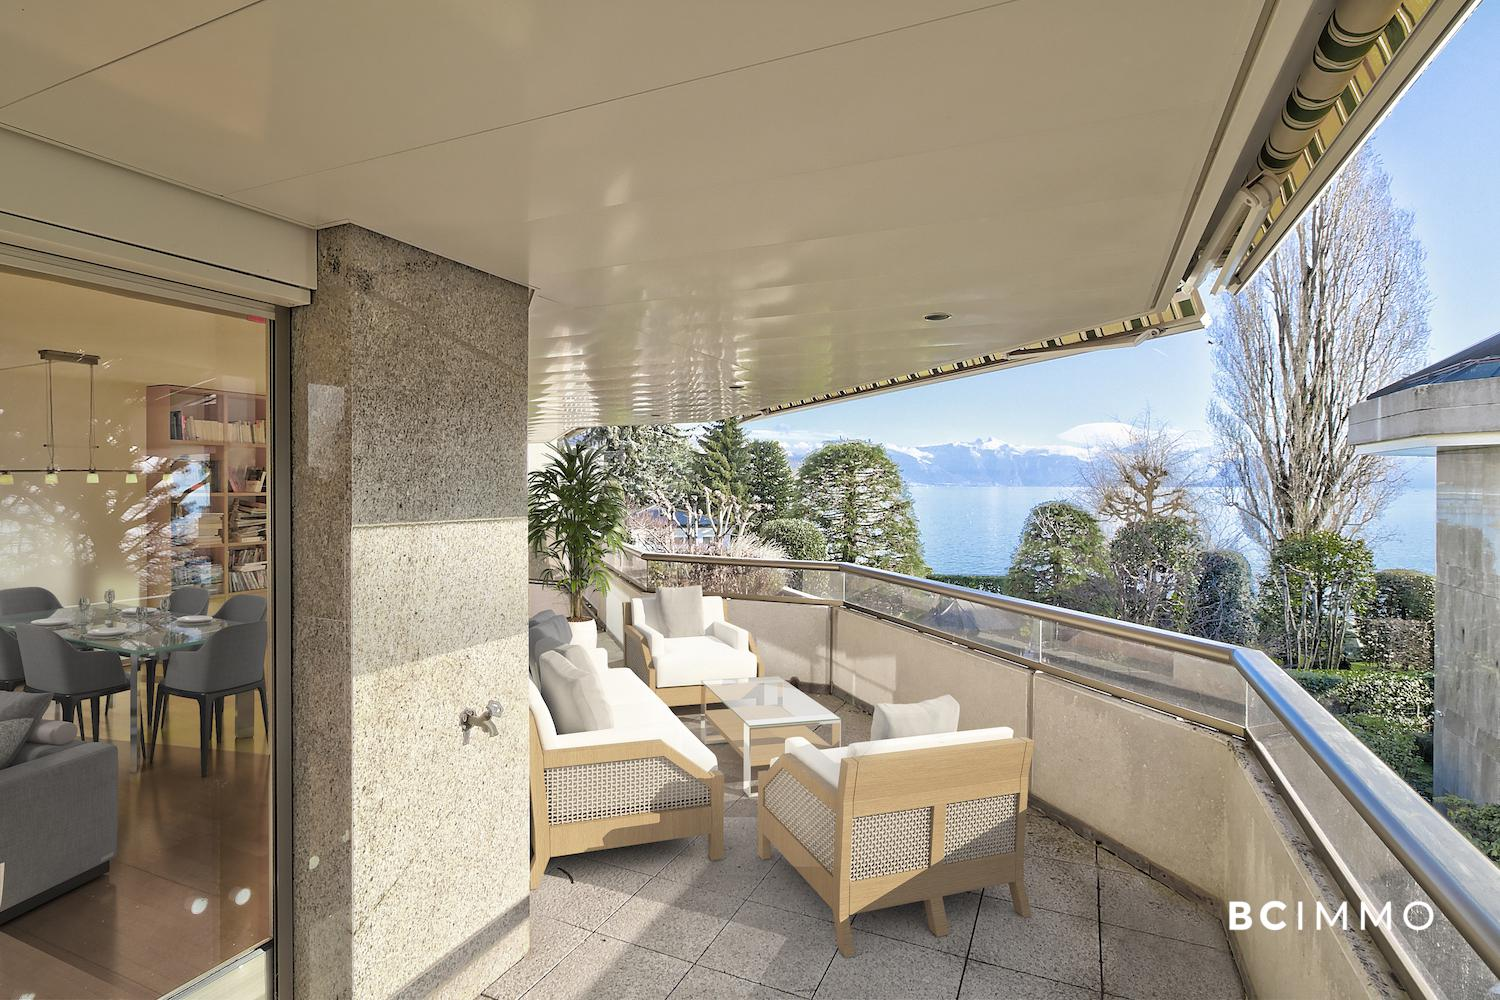 BC Immo - At the gates of South-eastern Lausanne - Beautiful apartment at a stone's throw from the lake - 1009KG23-3